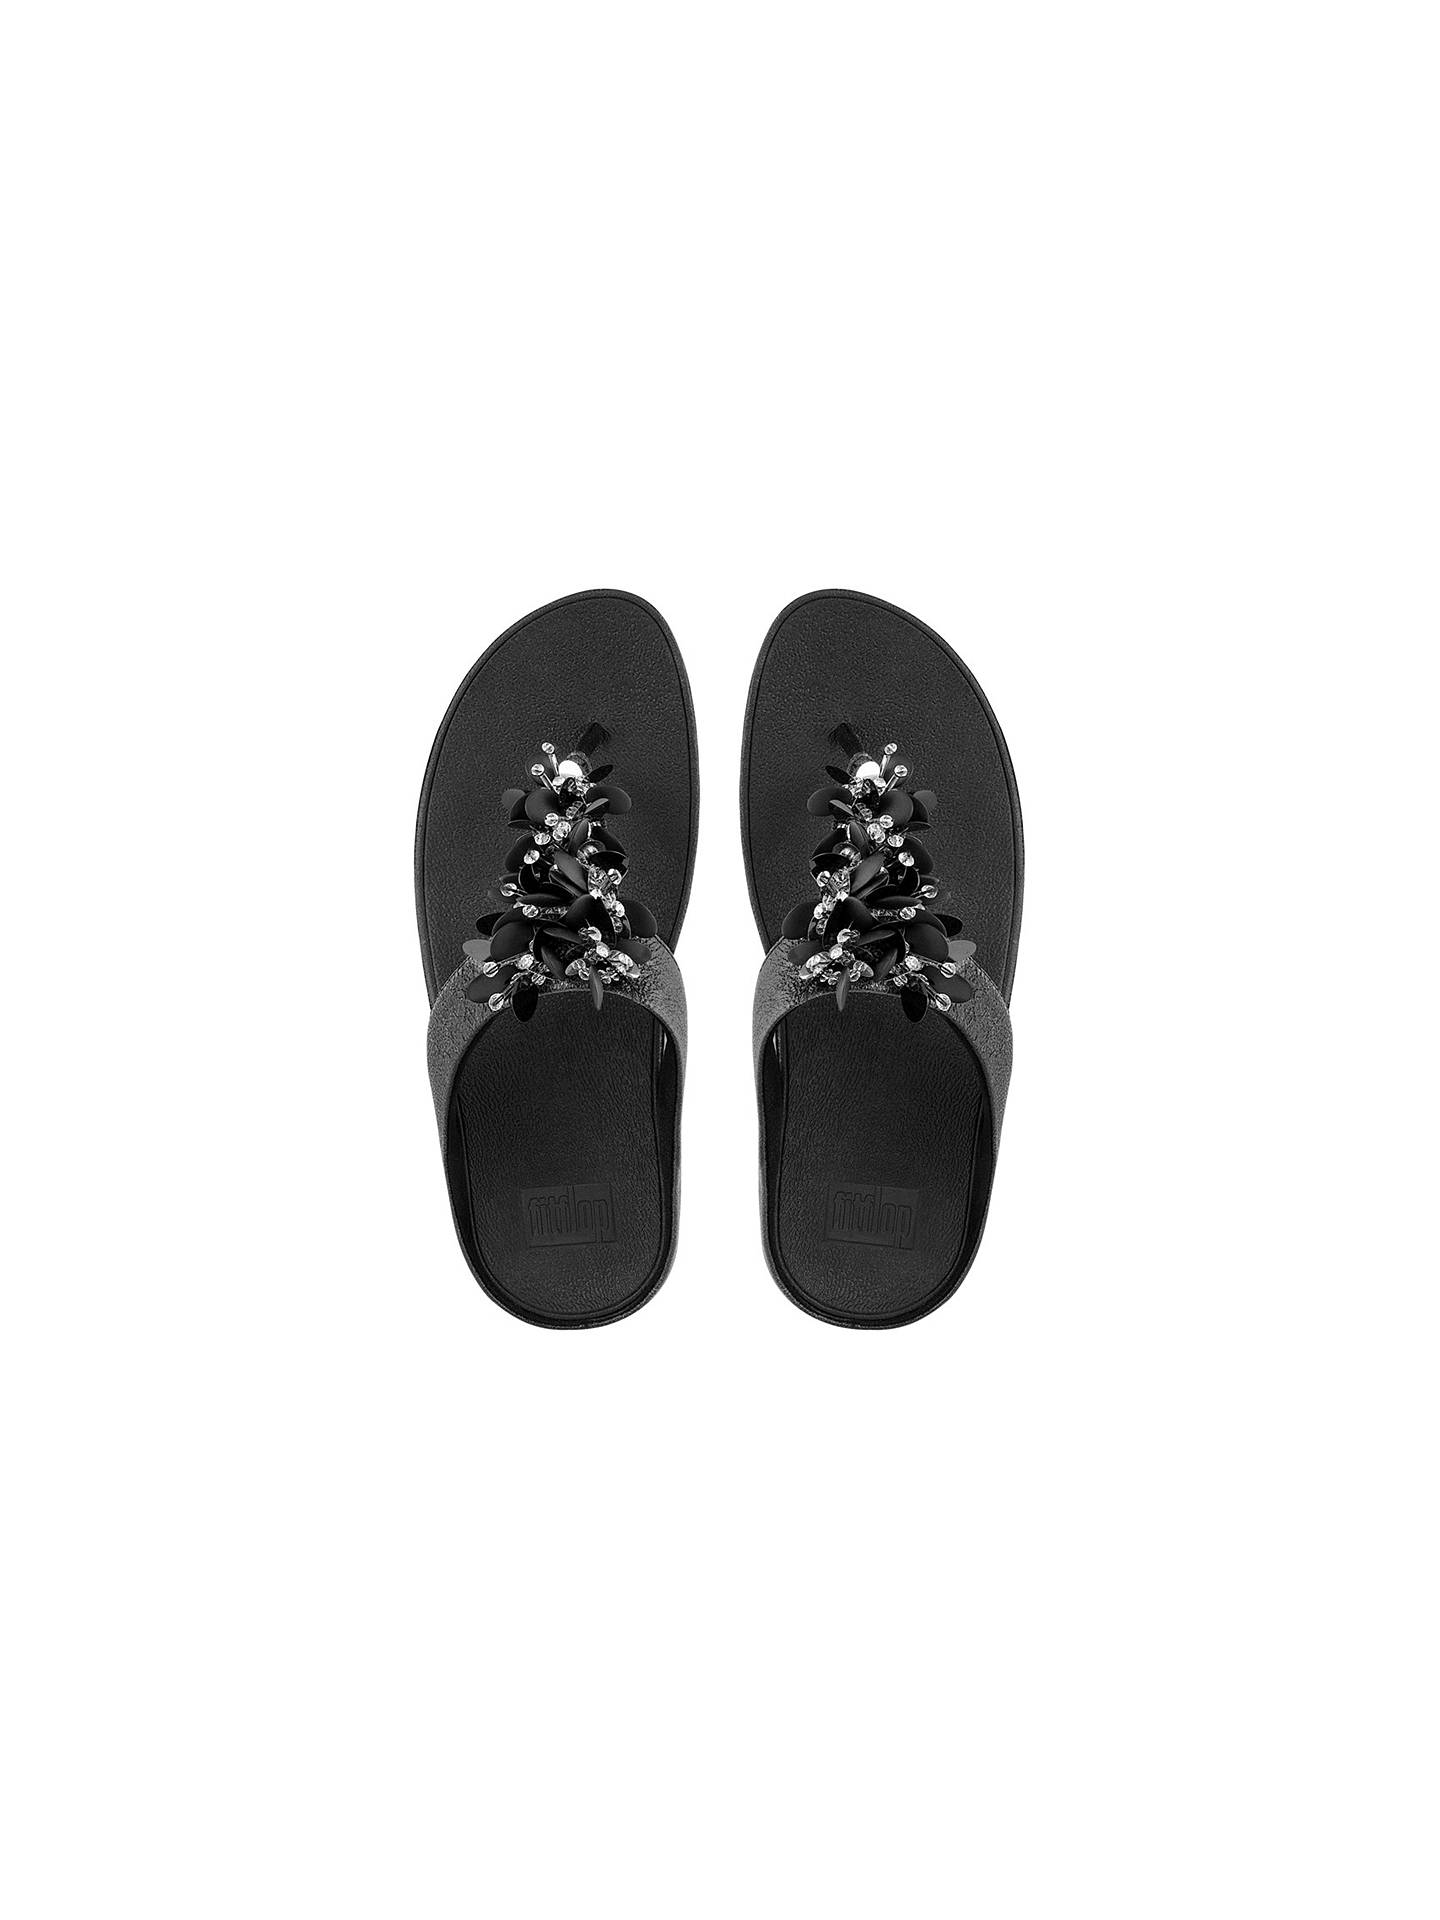 462cf080b06f FitFlop Boogaloo Toe Post Sandals at John Lewis   Partners